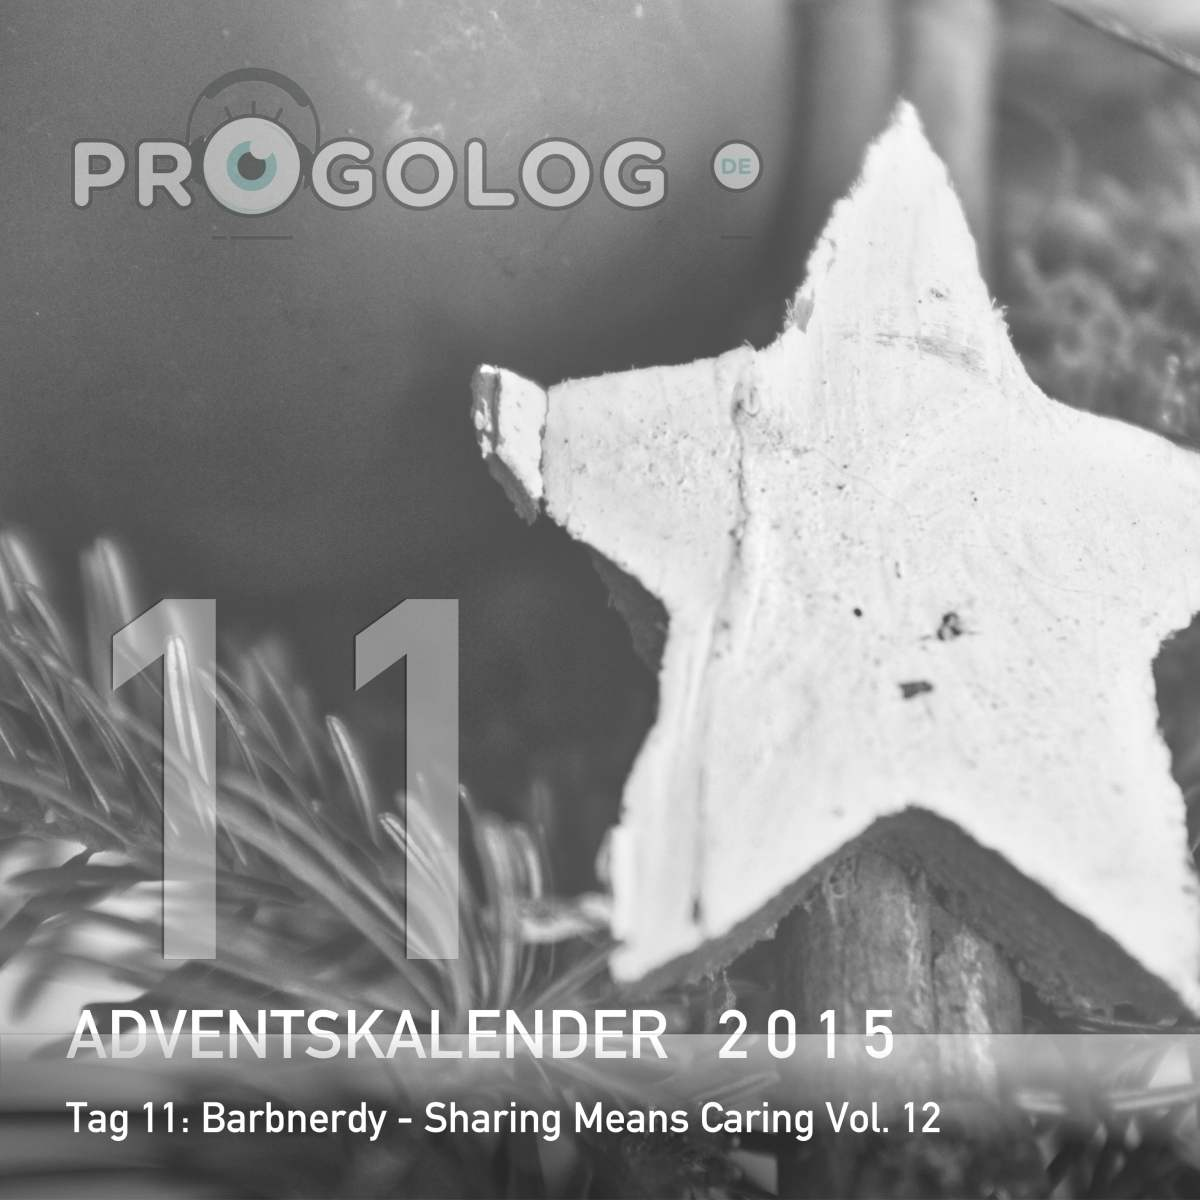 Adventskalender 2015 - Tag 11: Barbnerdy - Sharing Means Caring Vol. 12 [progoak15]